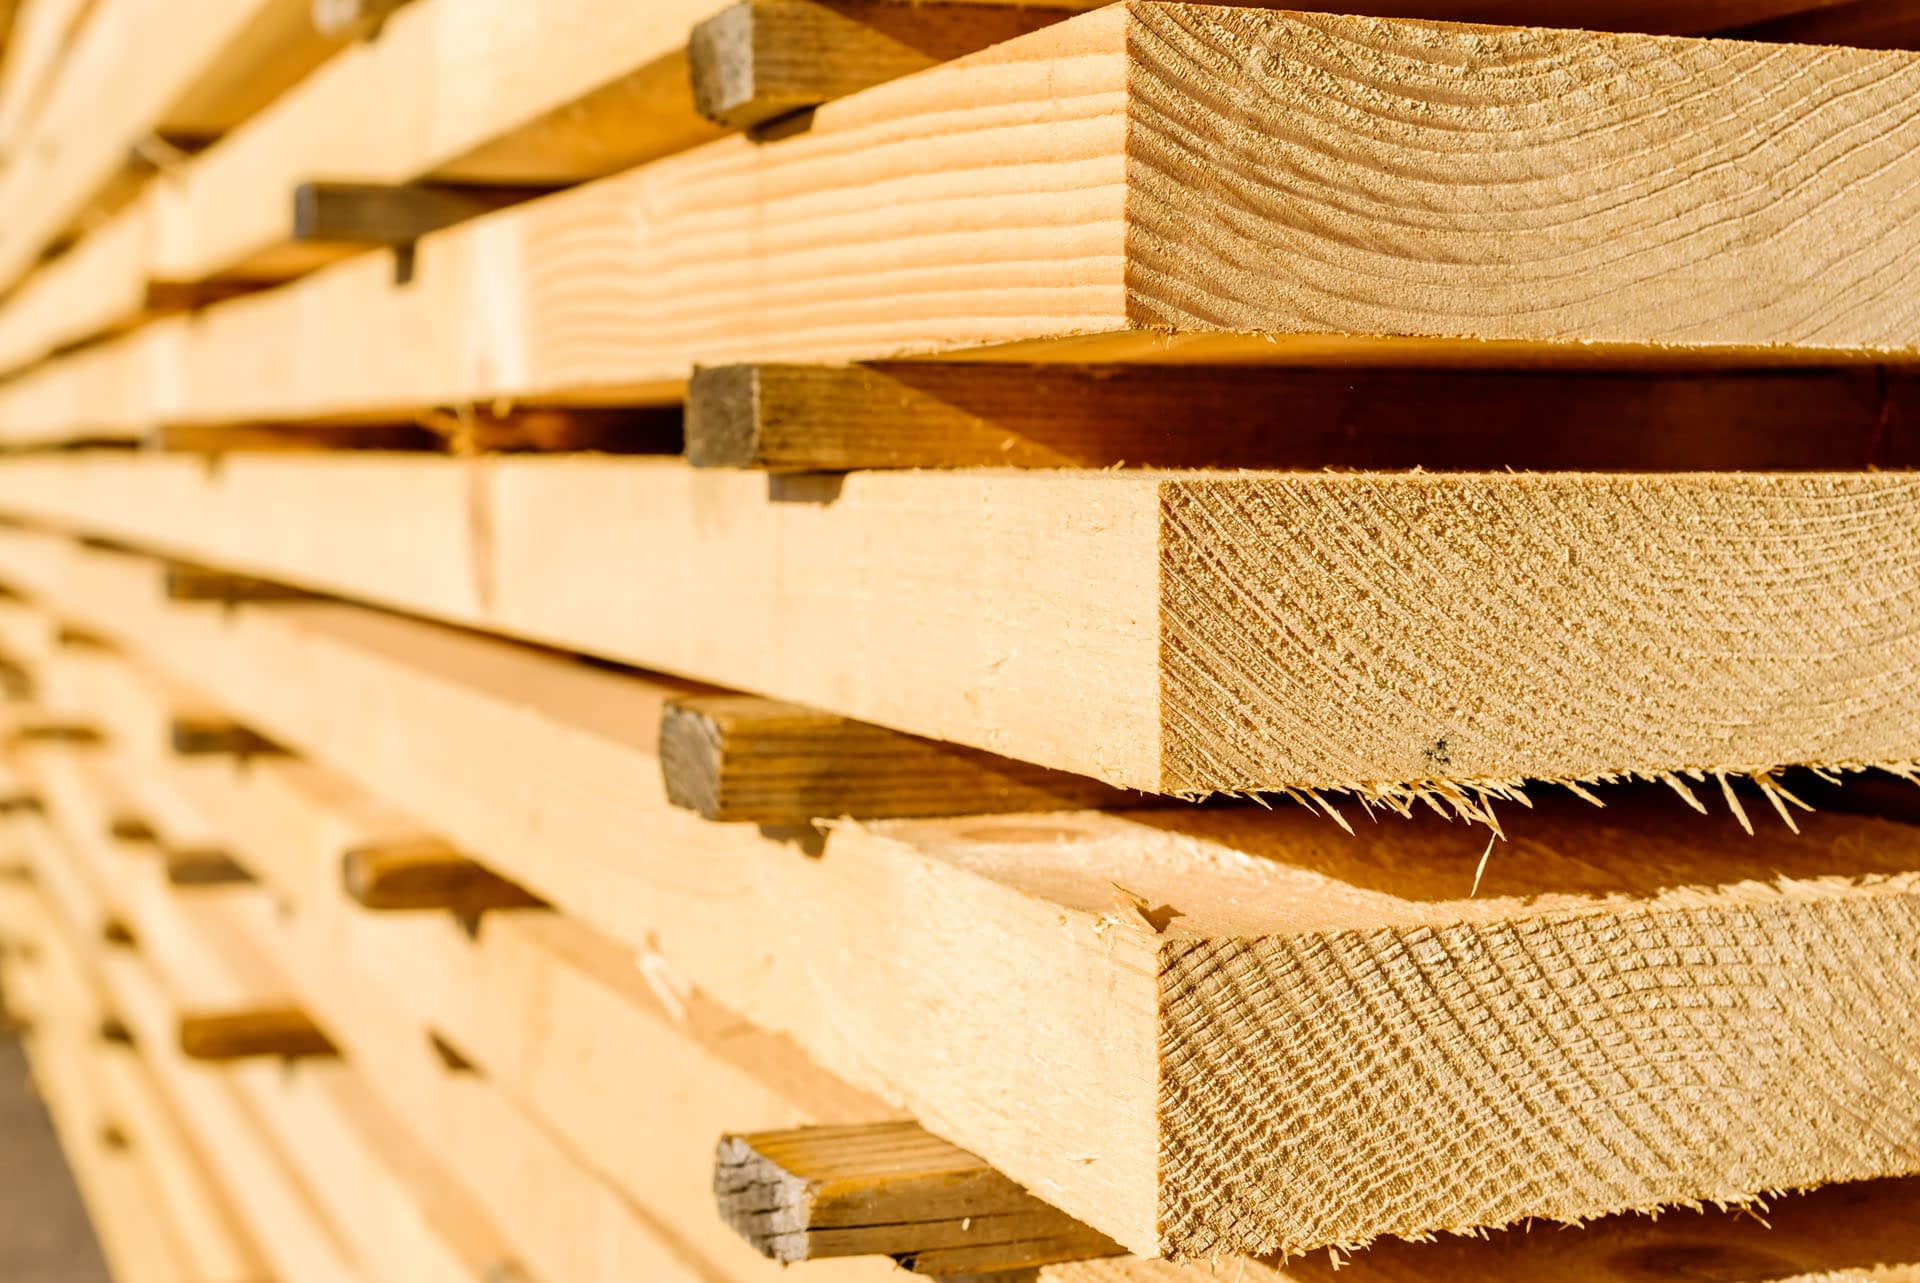 sawn-and-treated-timber-rough-sawn-palletised